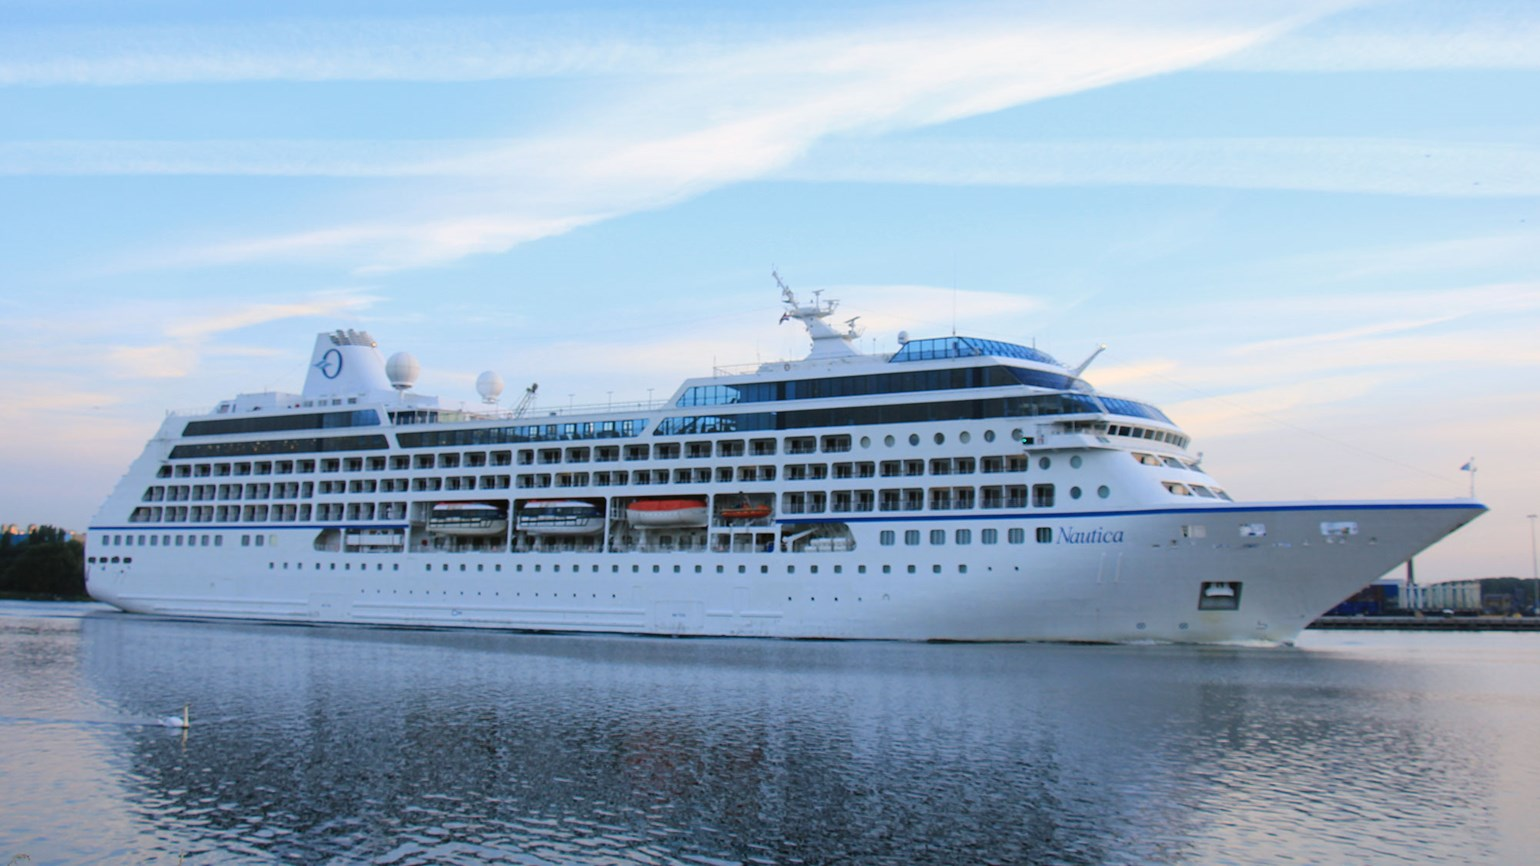 Luxury Cruise Lines Get Better At Finding New Customers Travel Weekly - New luxury cruise ships